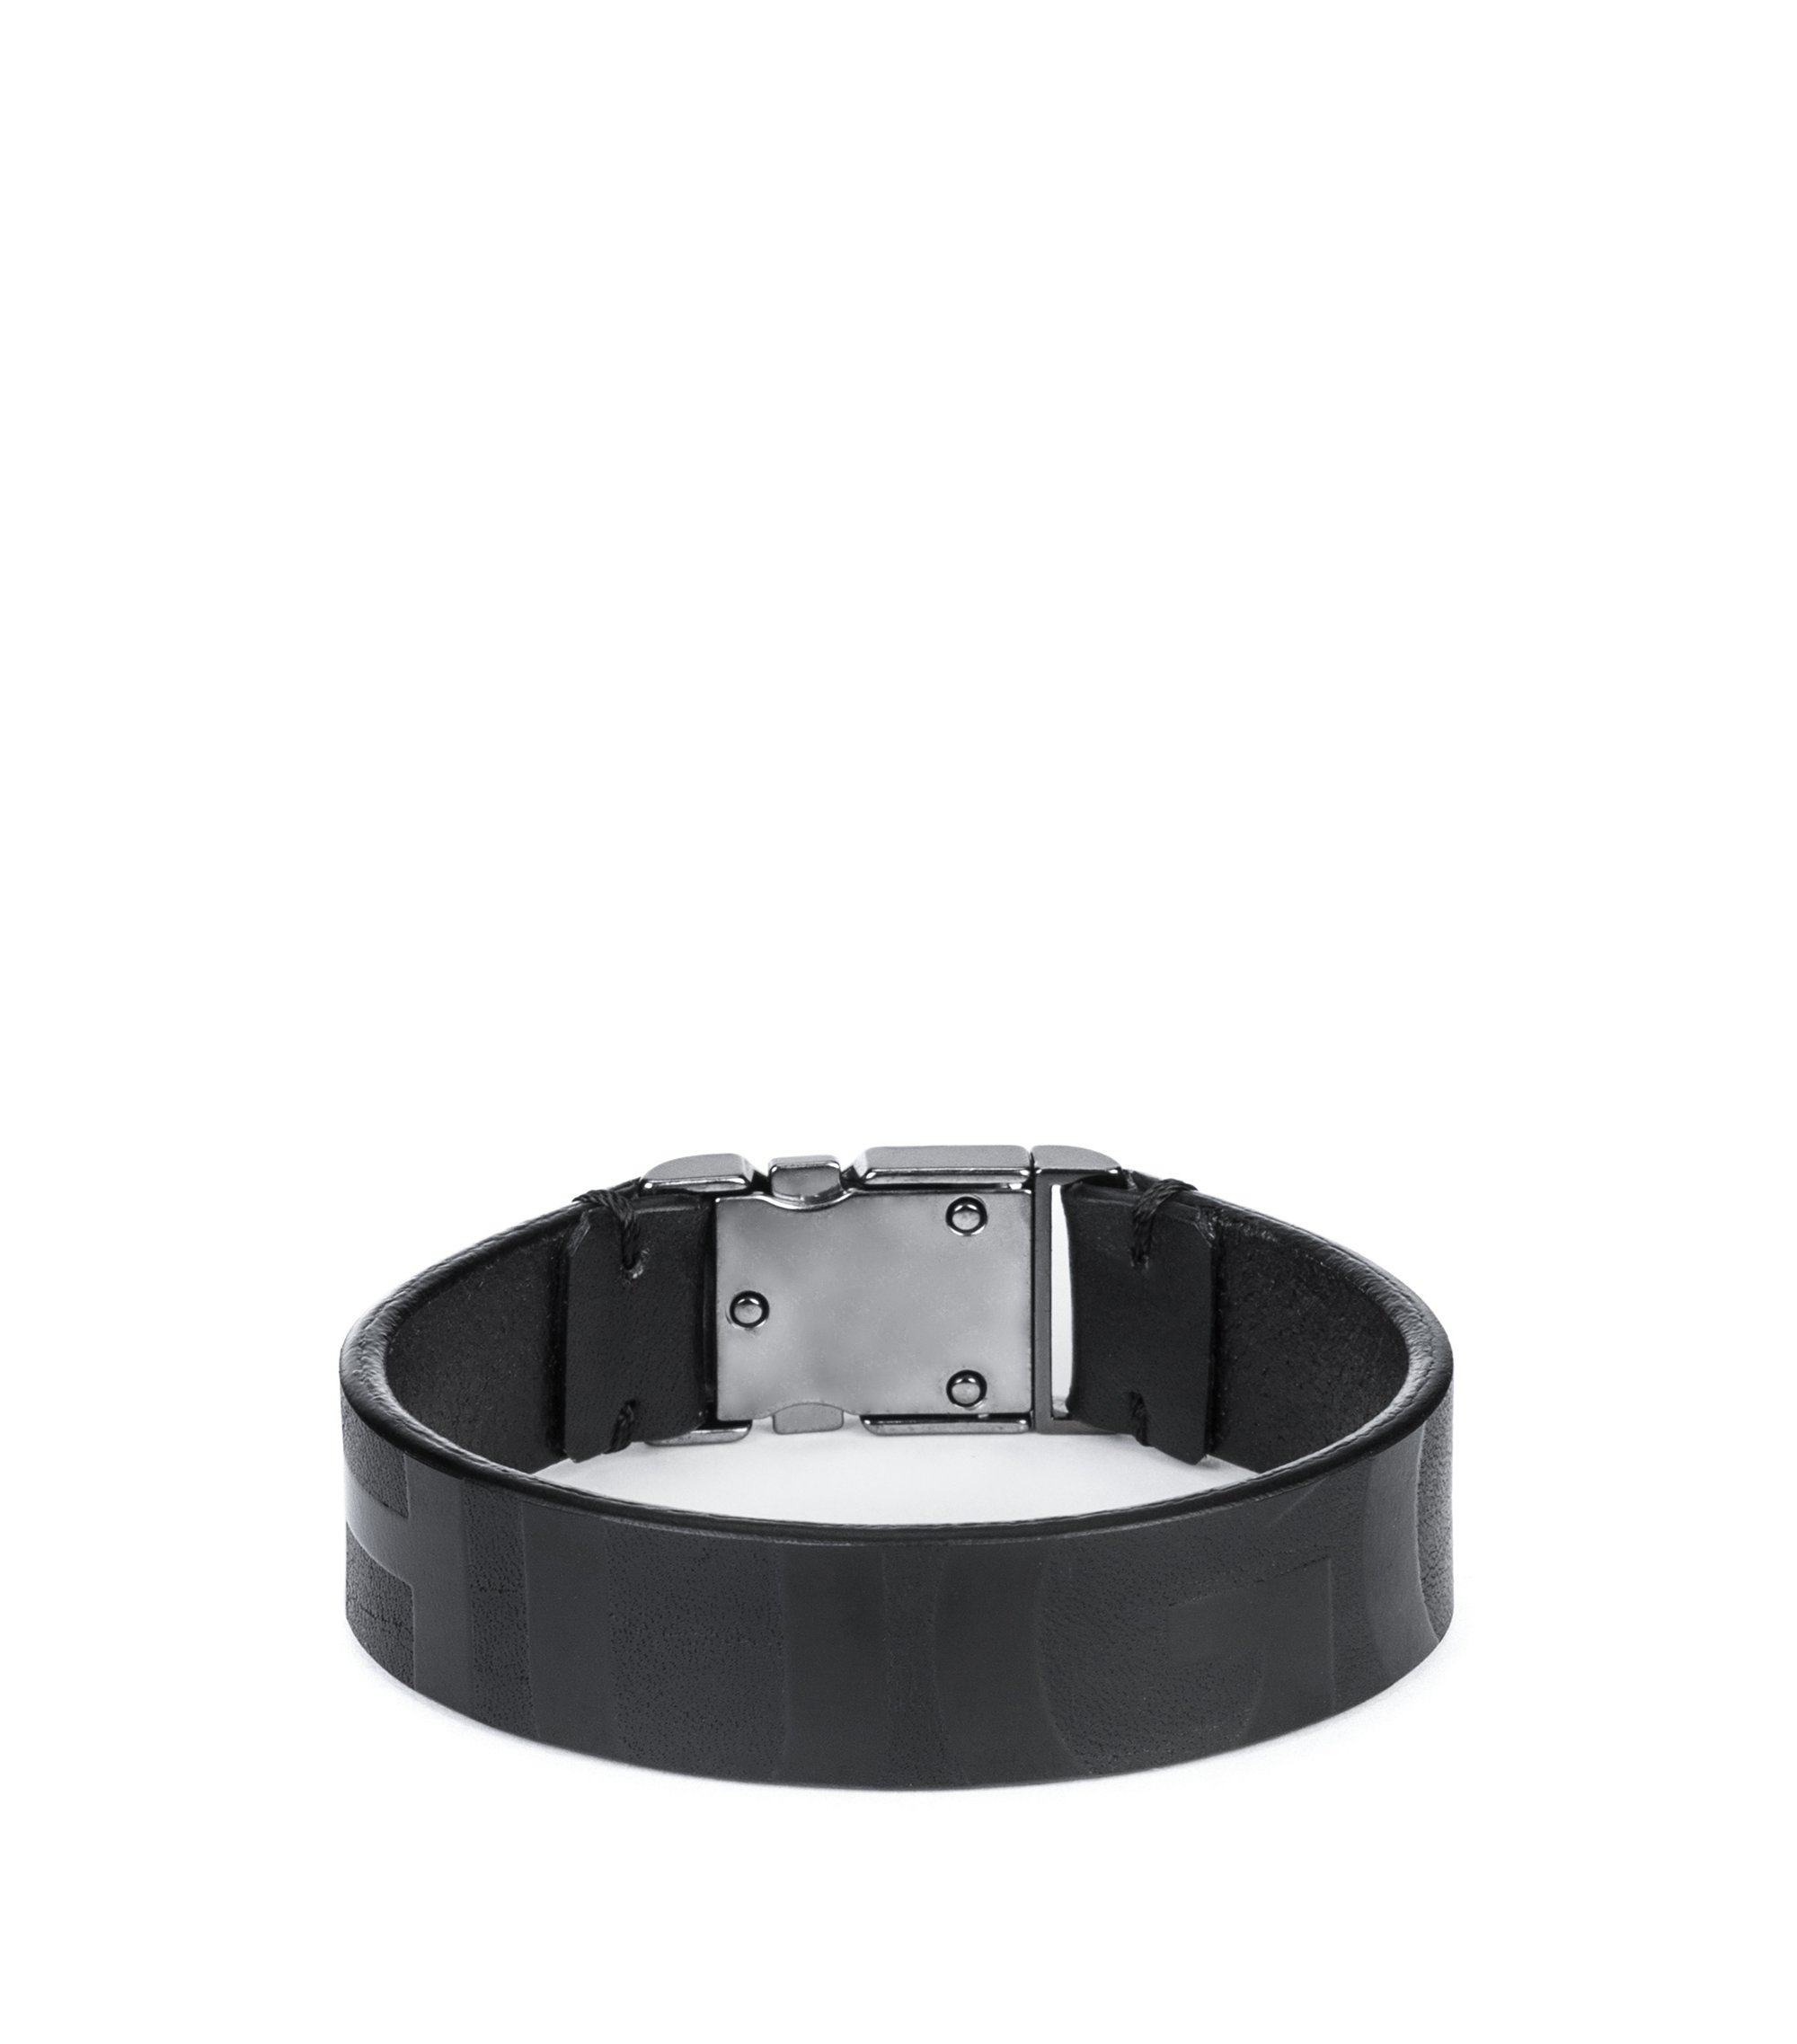 Buckle-closure bracelet in nappa leather with printed logo, Black